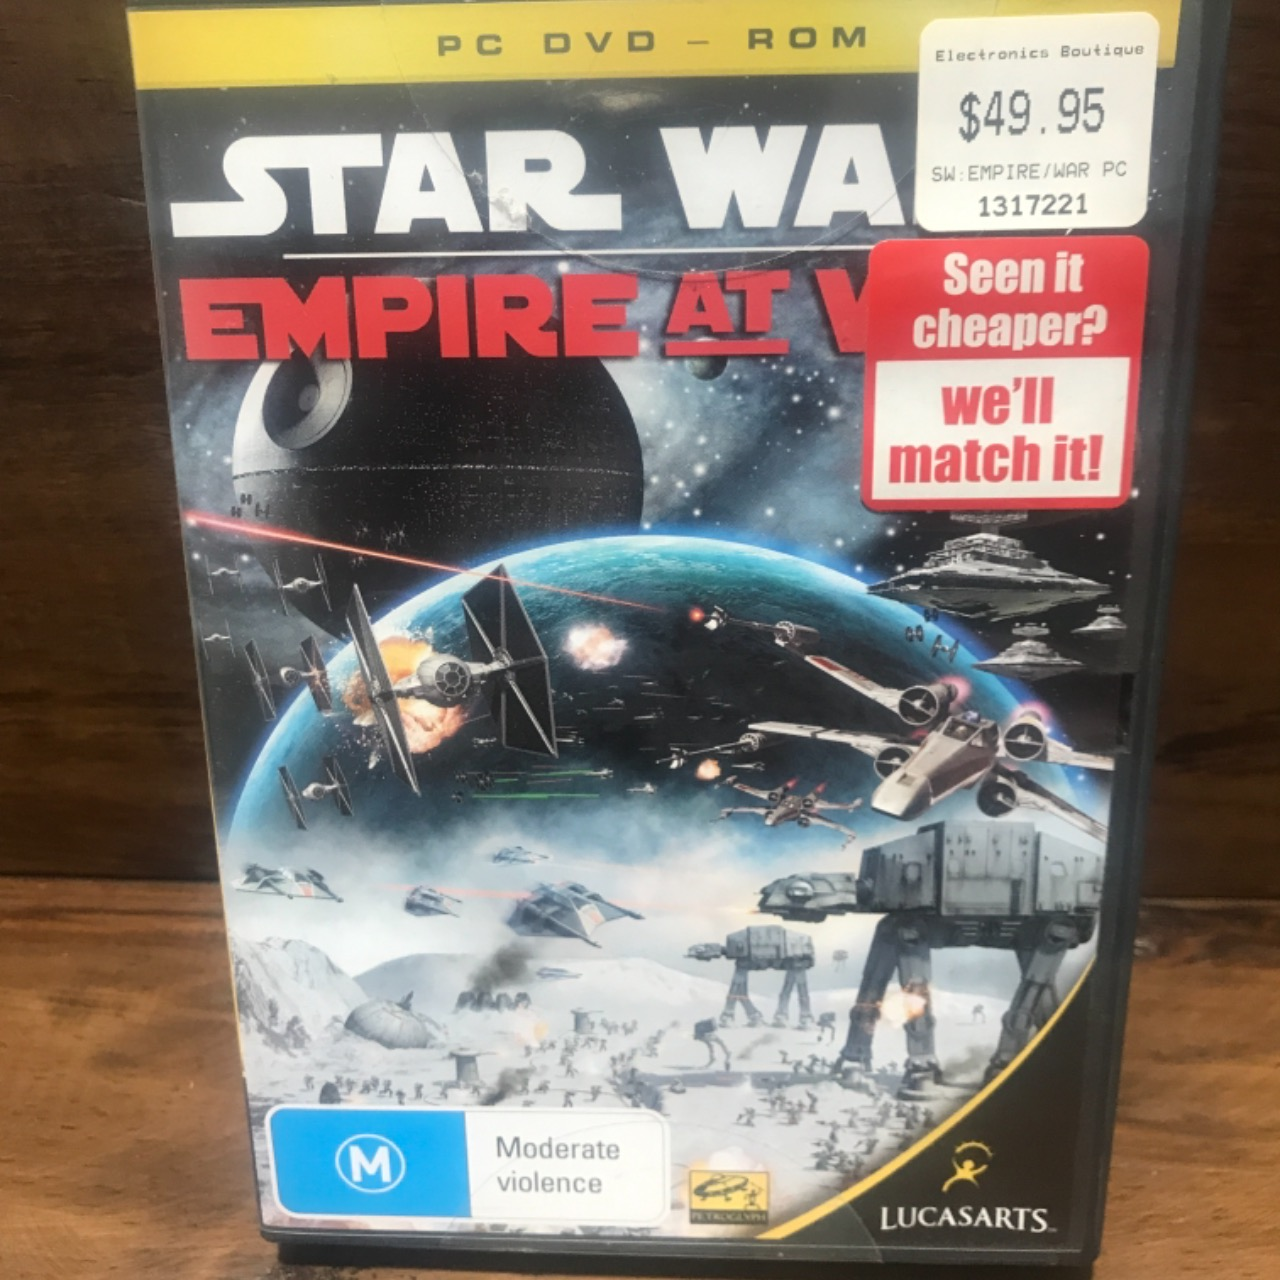 Star Wars Empire At War PC DVD - Rom Game